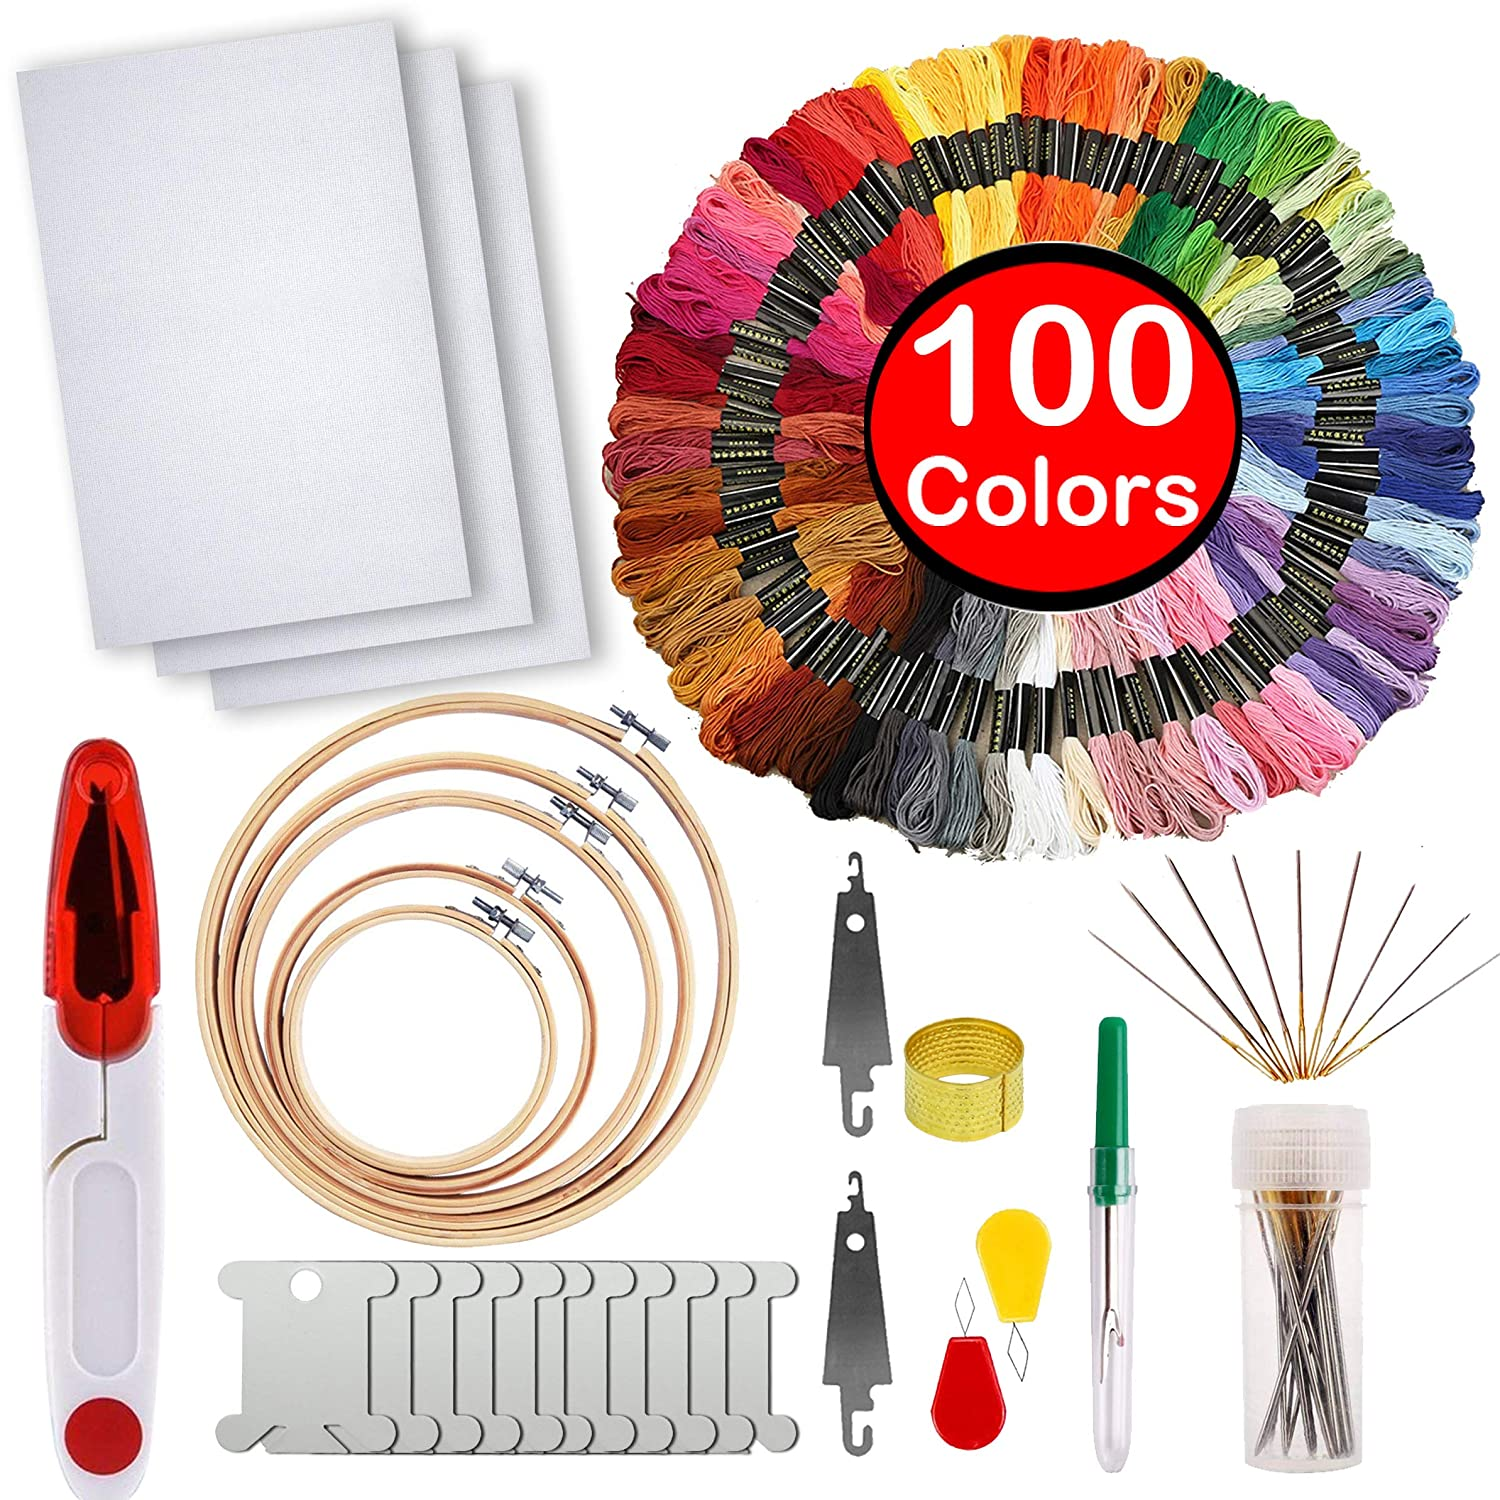 Full Range of Embroidery Starter Kit,5 Pieces Bamboo Embroidery Hoops,100 Color Embroidery Threads,Cross Stitch Tool Kit MDPQT